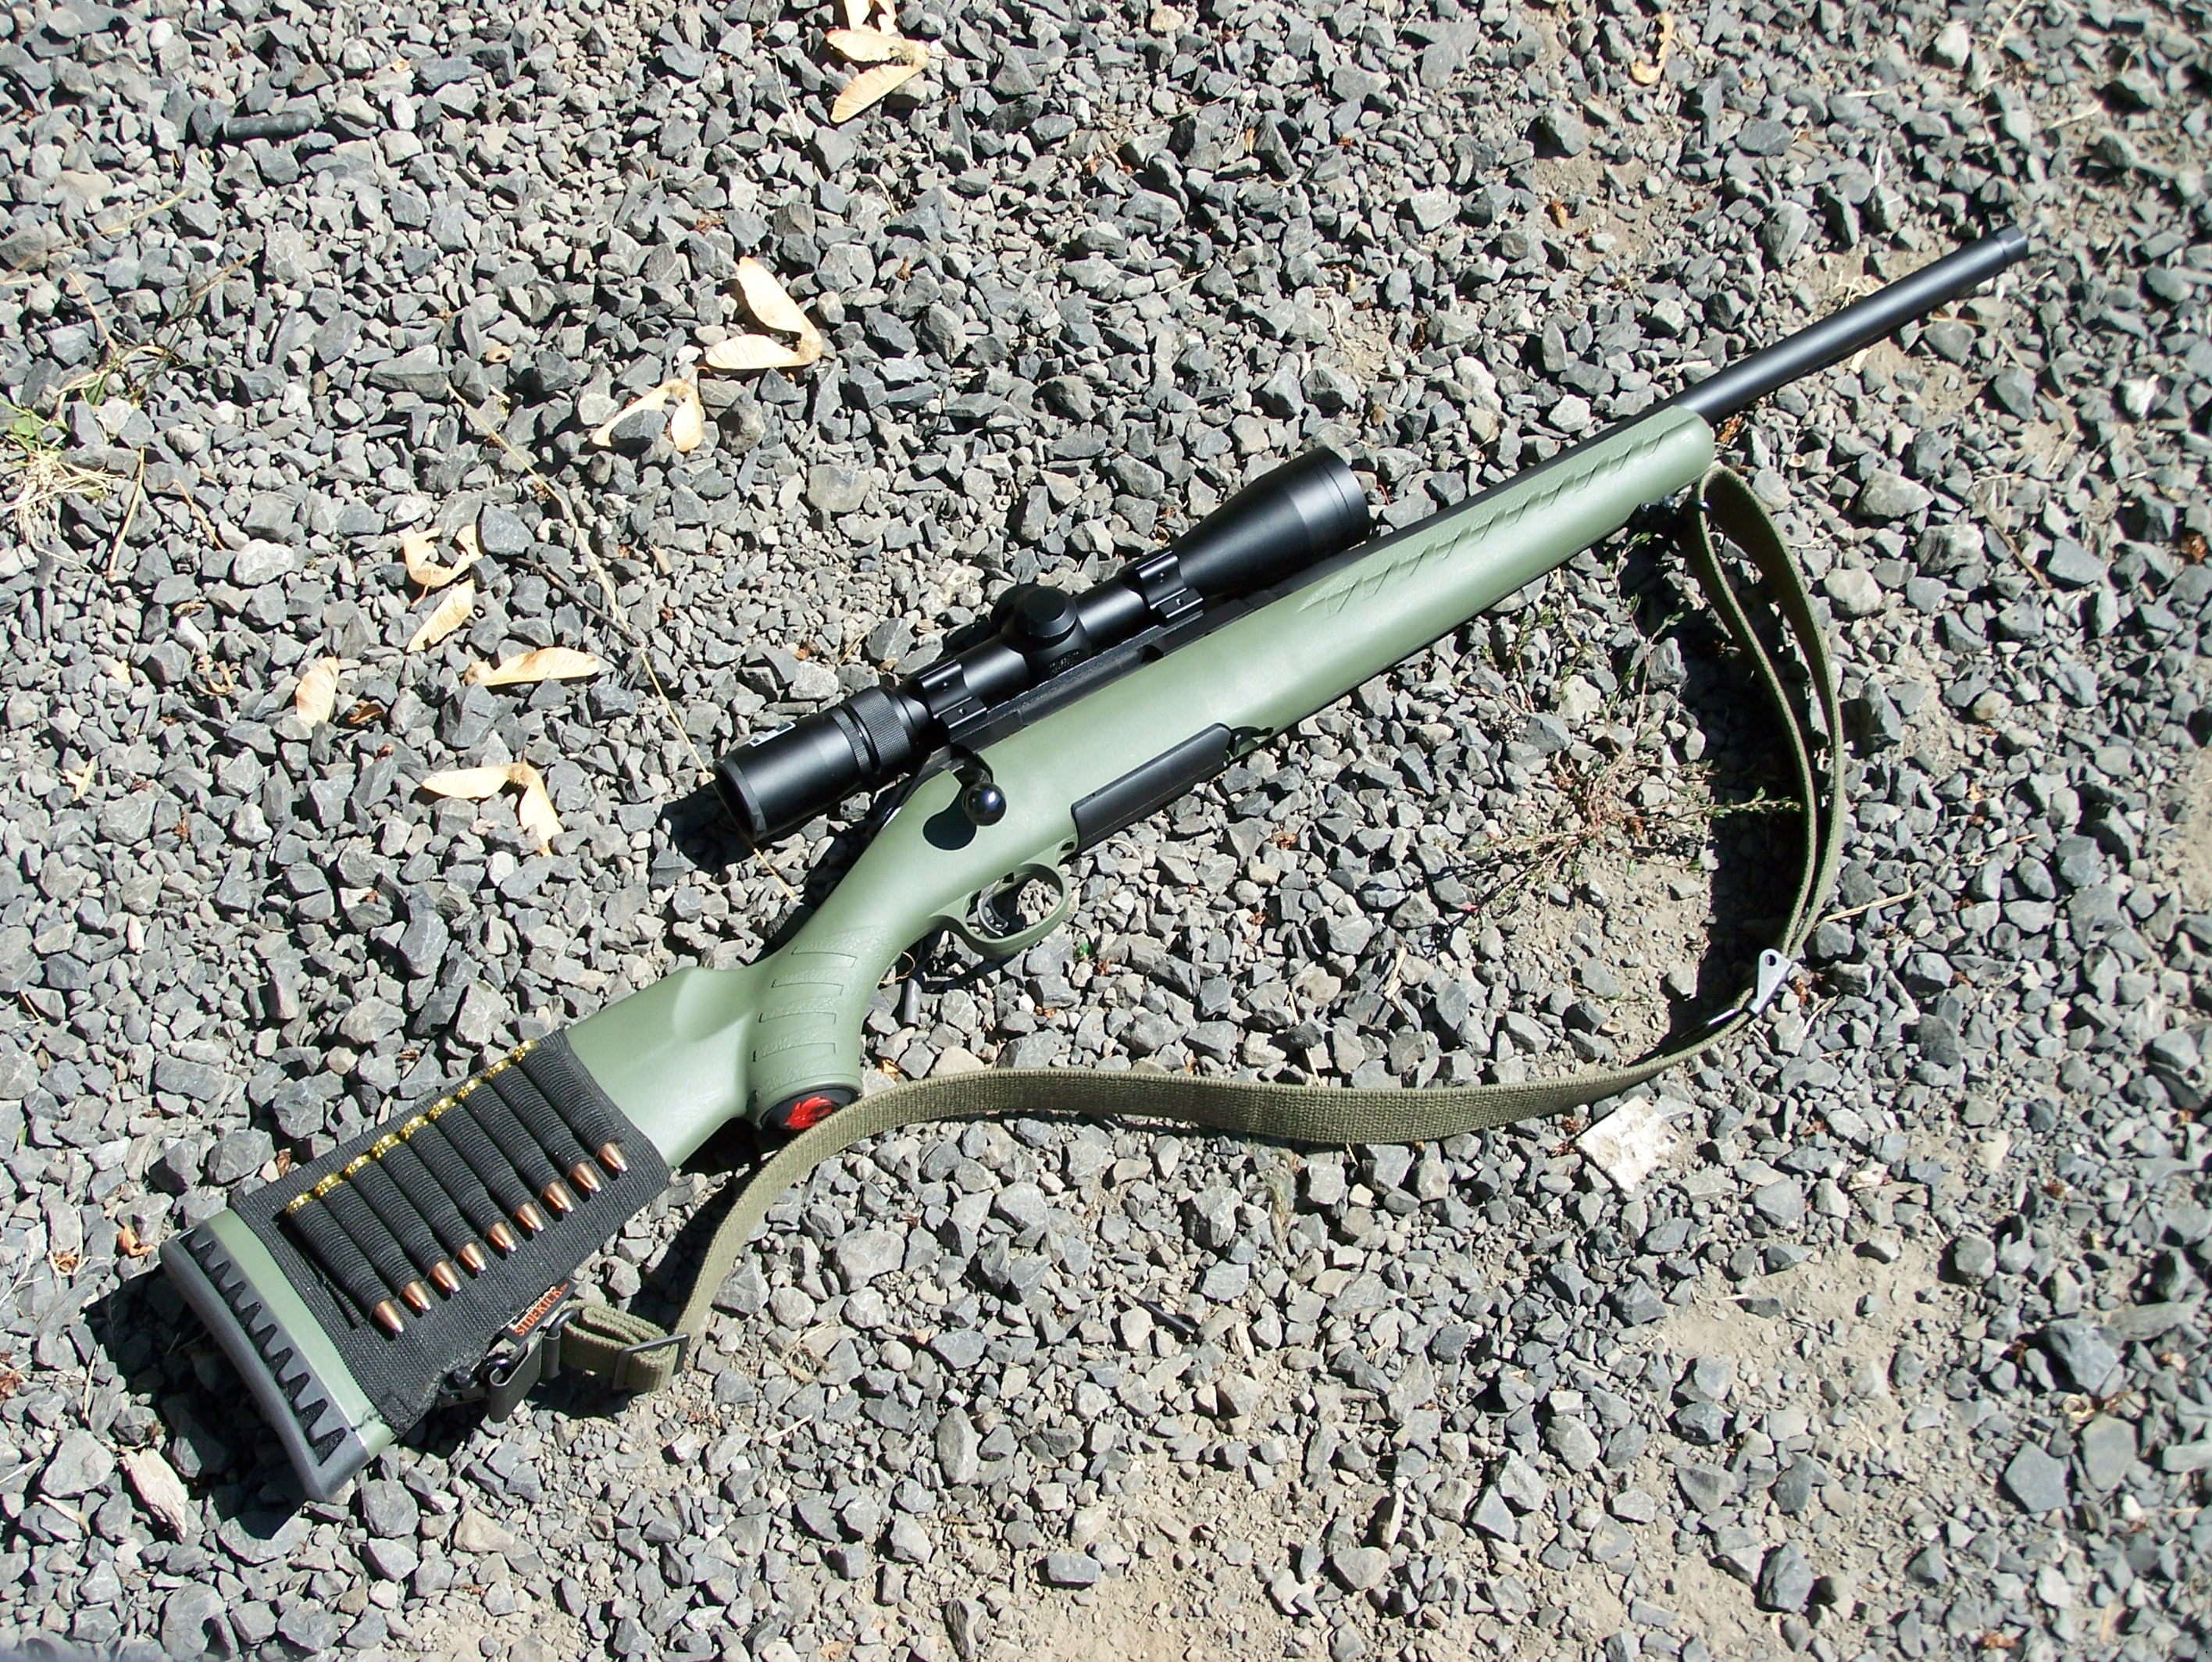 Review: Ruger American Rifle Predator Model in 308 Win